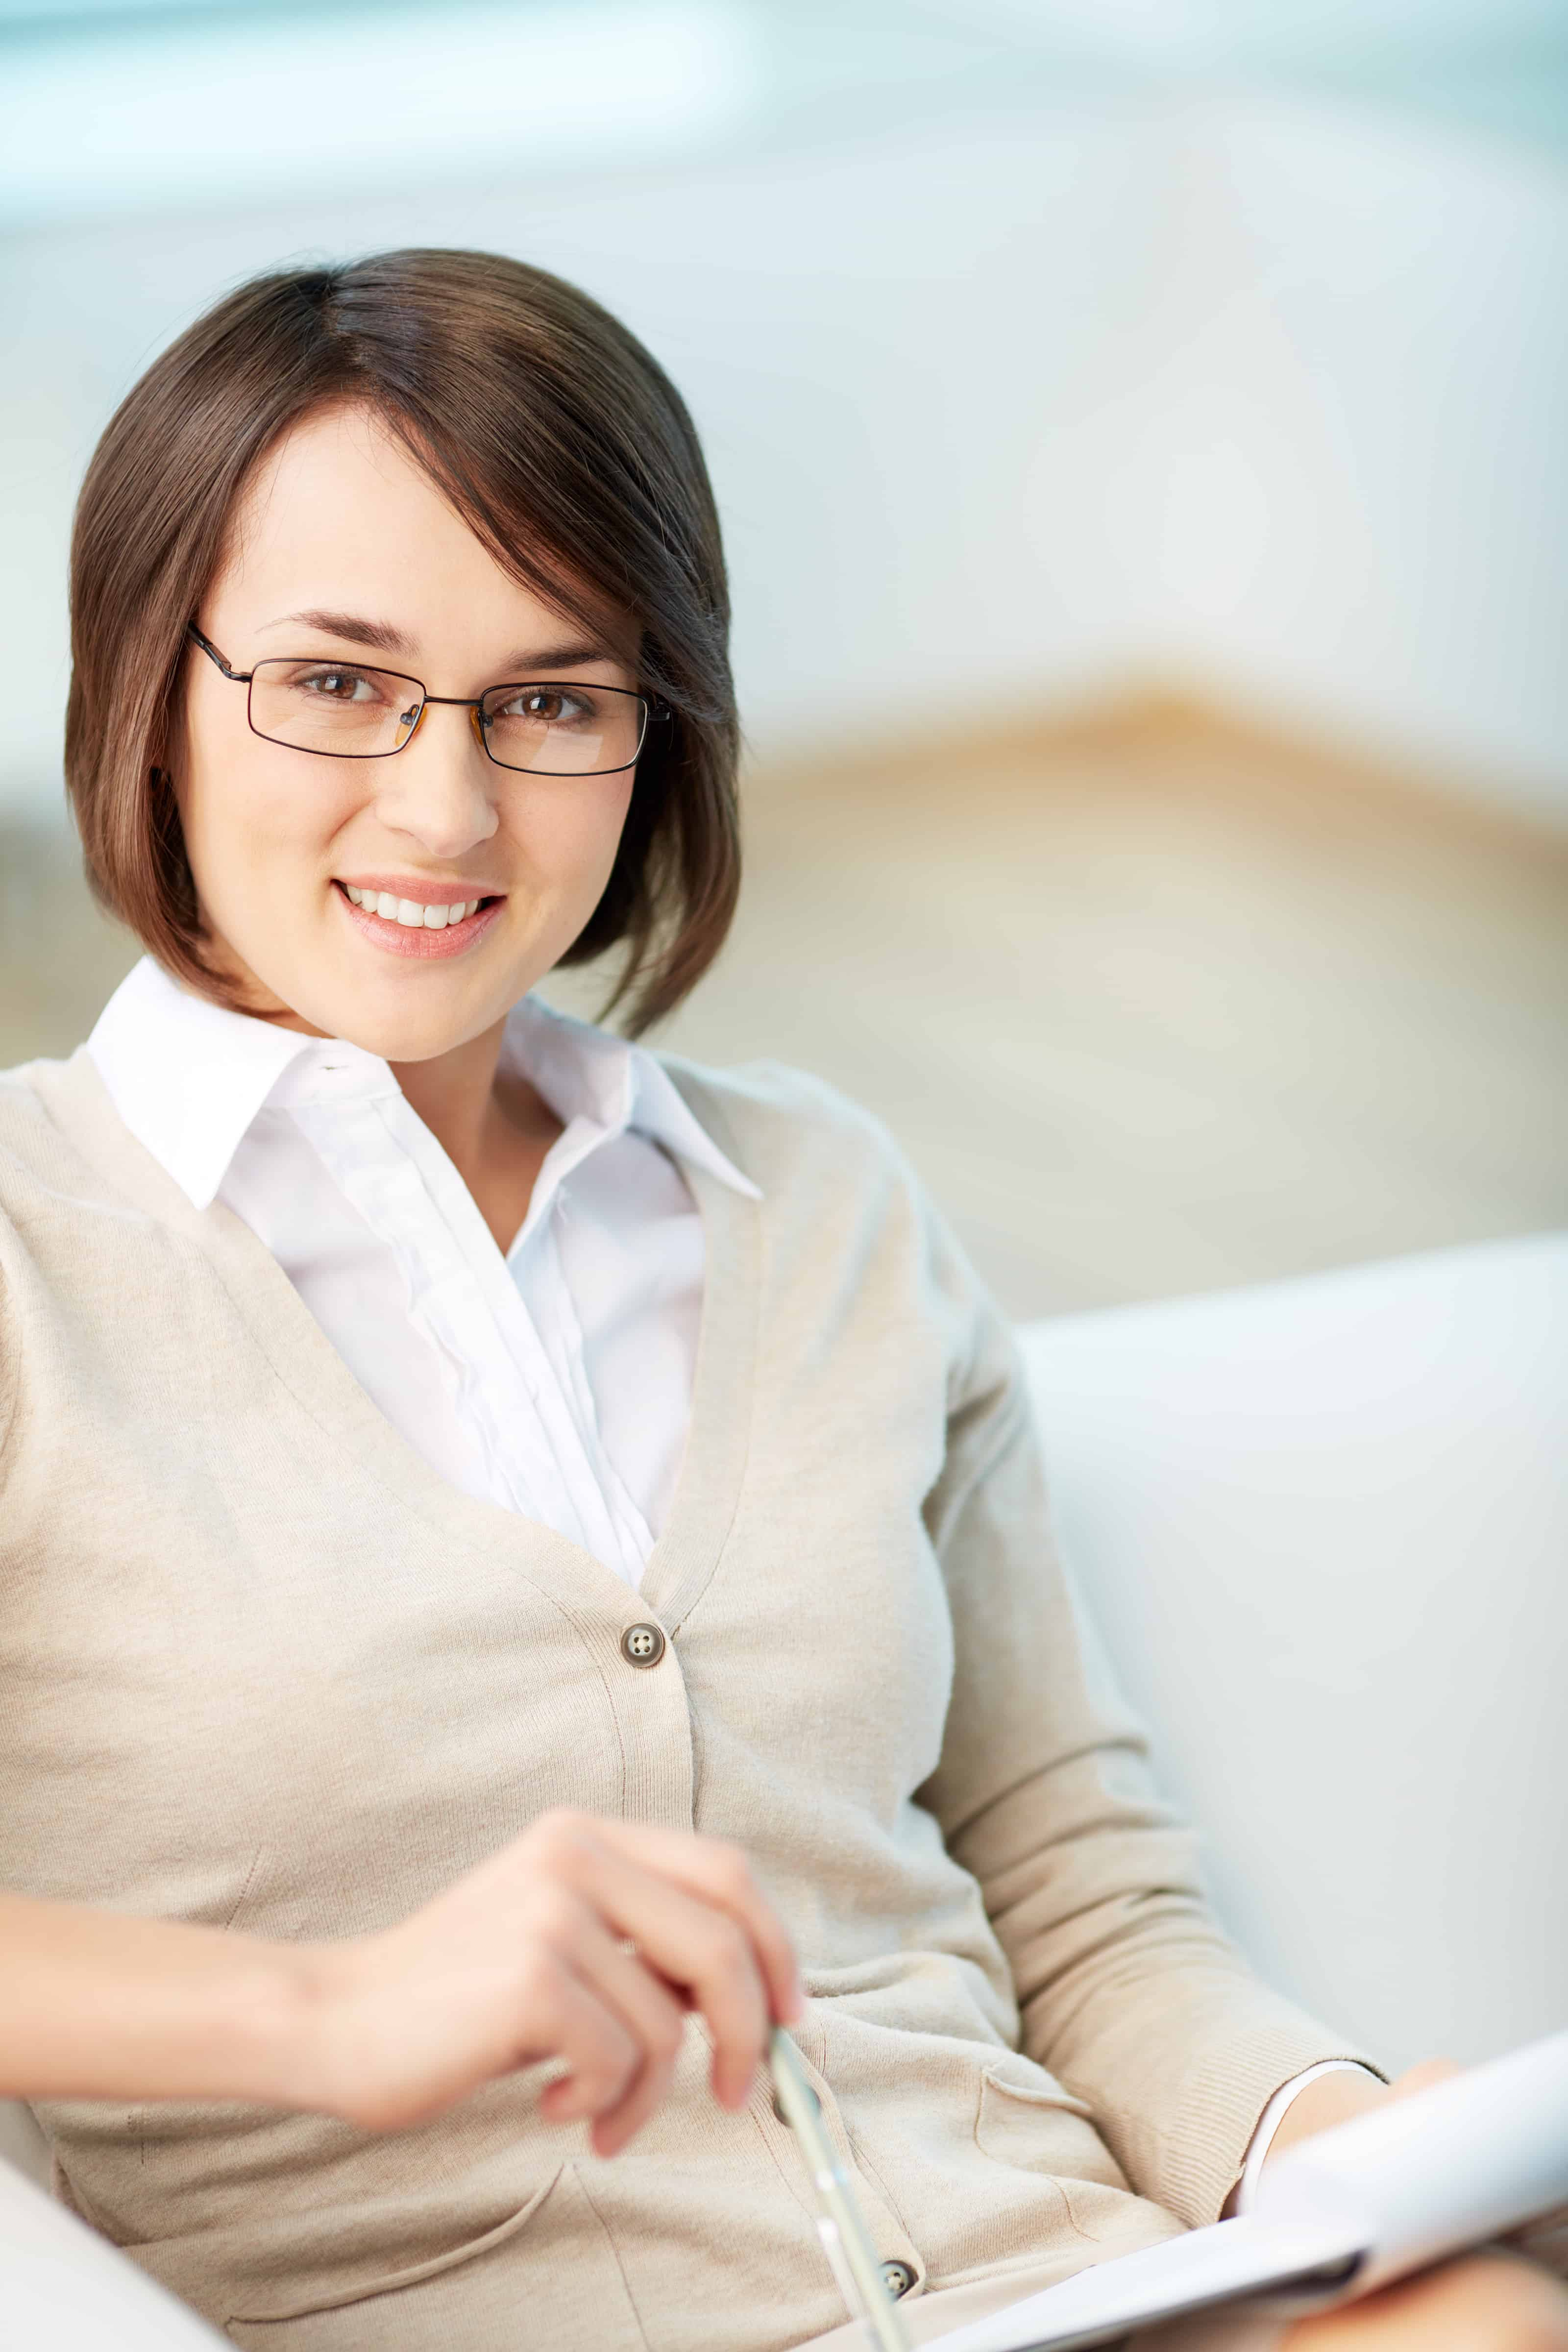 Eating Disorders Counselor In Vancouver Wa